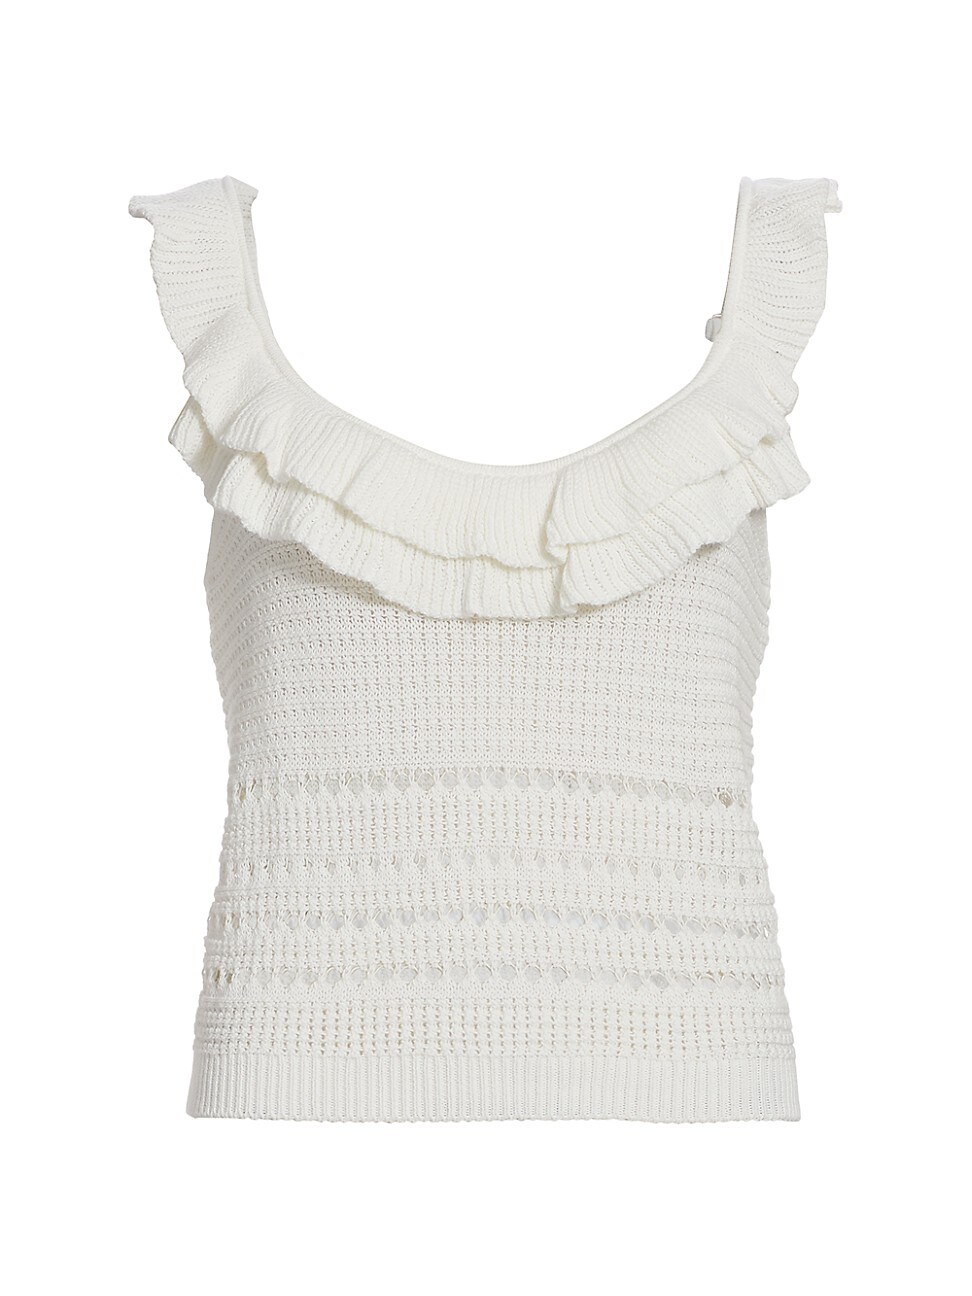 7 For All Mankind WOMEN'S CROCHET RUFFLE CAMISOLE TOP